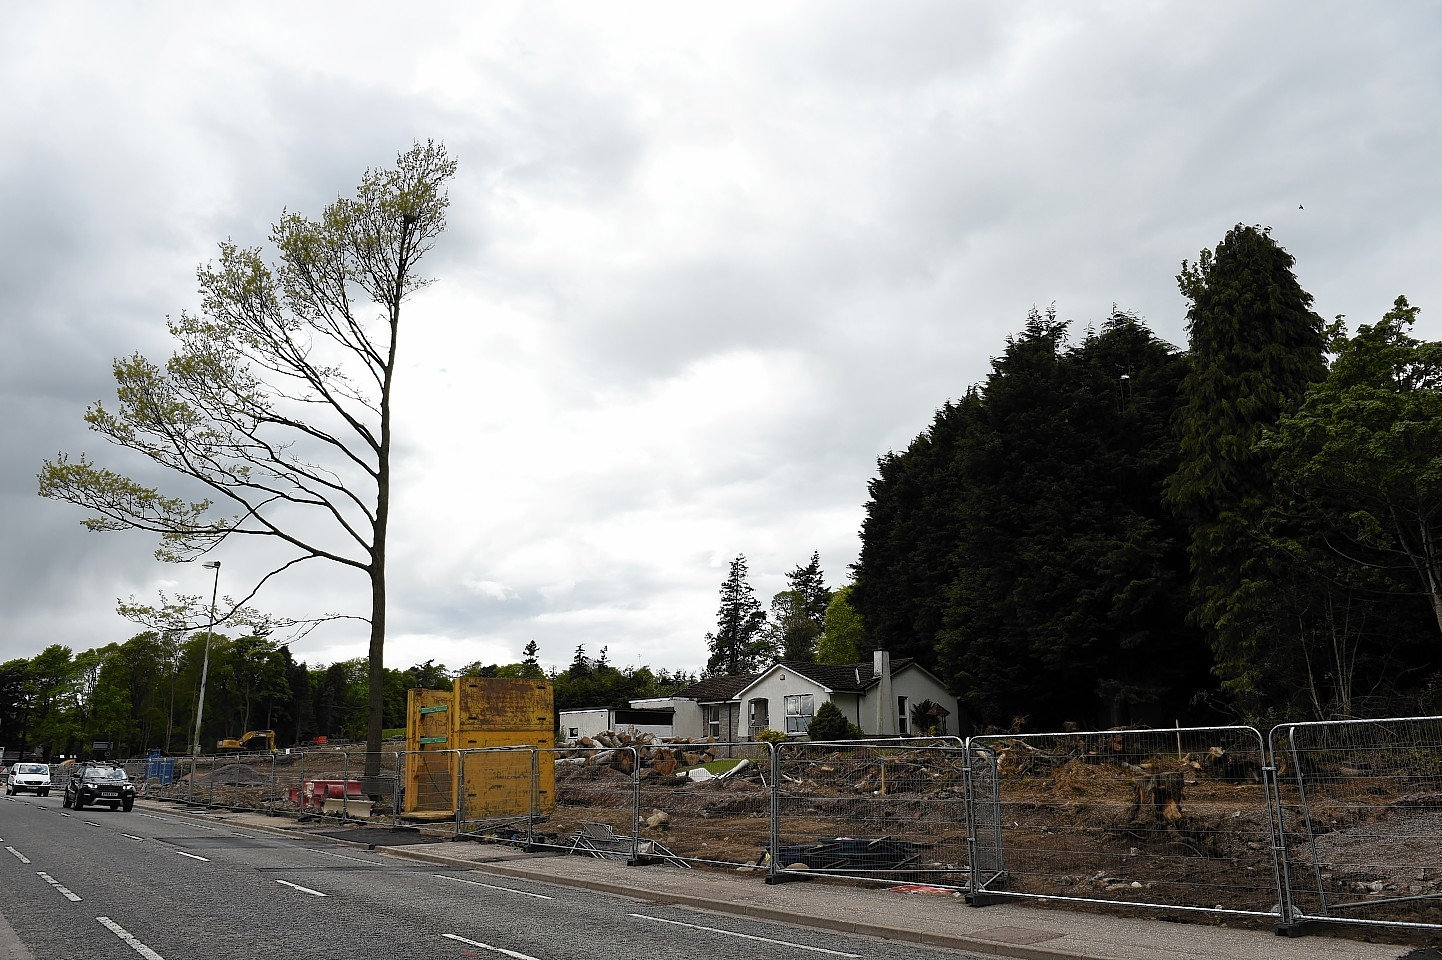 A bird's nest has hampered tree-felling work on the AWPR. Picture by Kenny Elrick